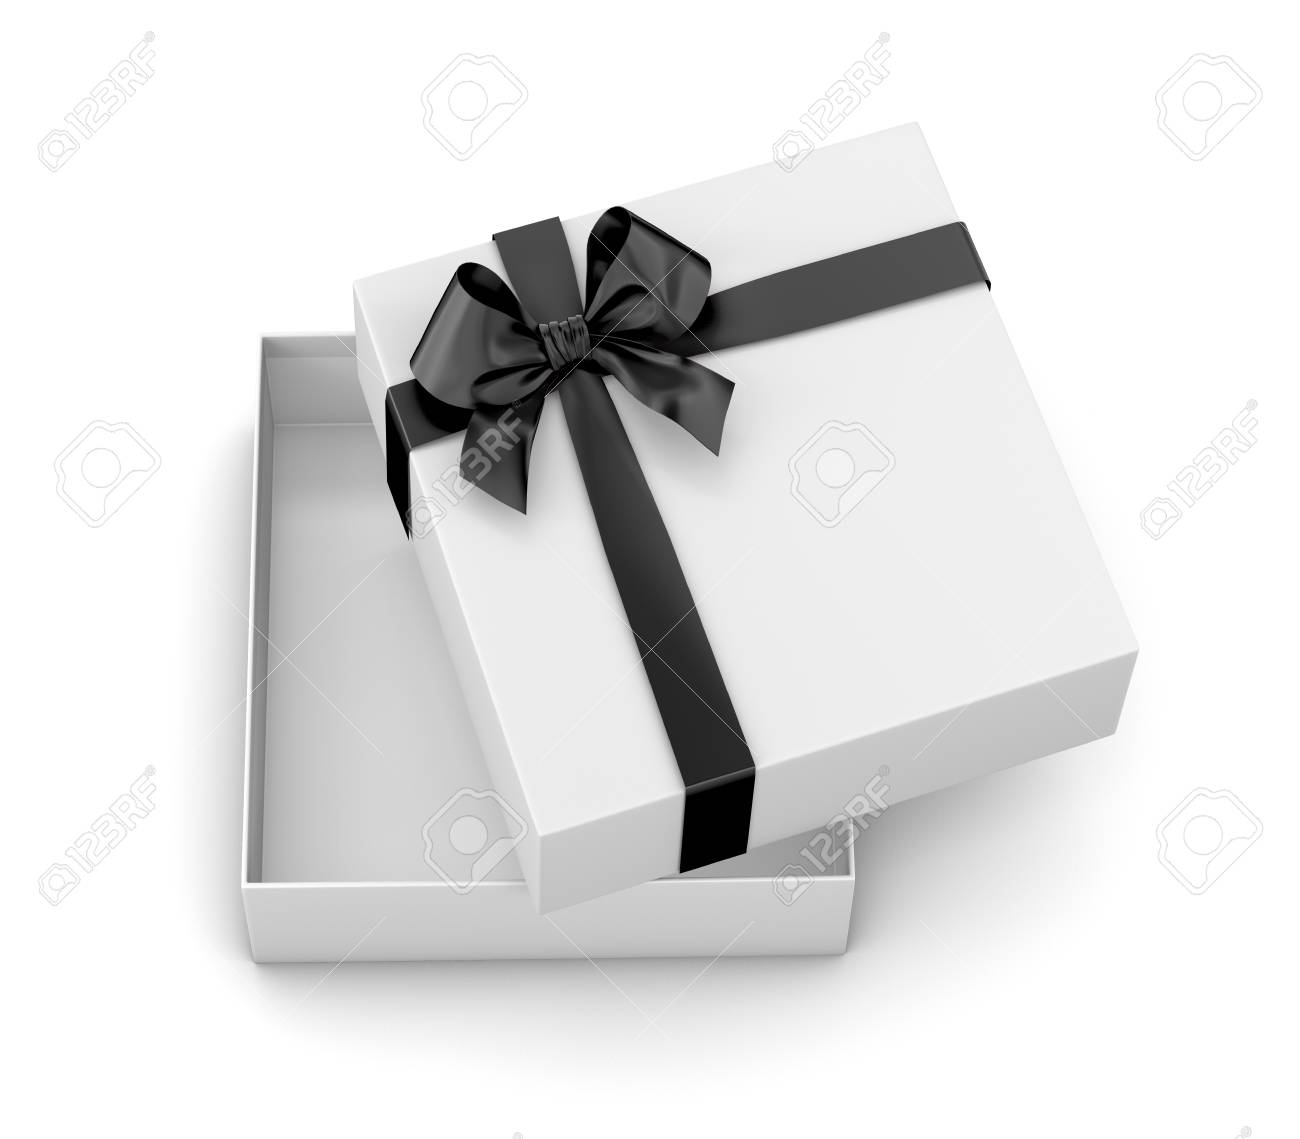 Gift Box For Christmas New Year S Day Open White Gift Box Black